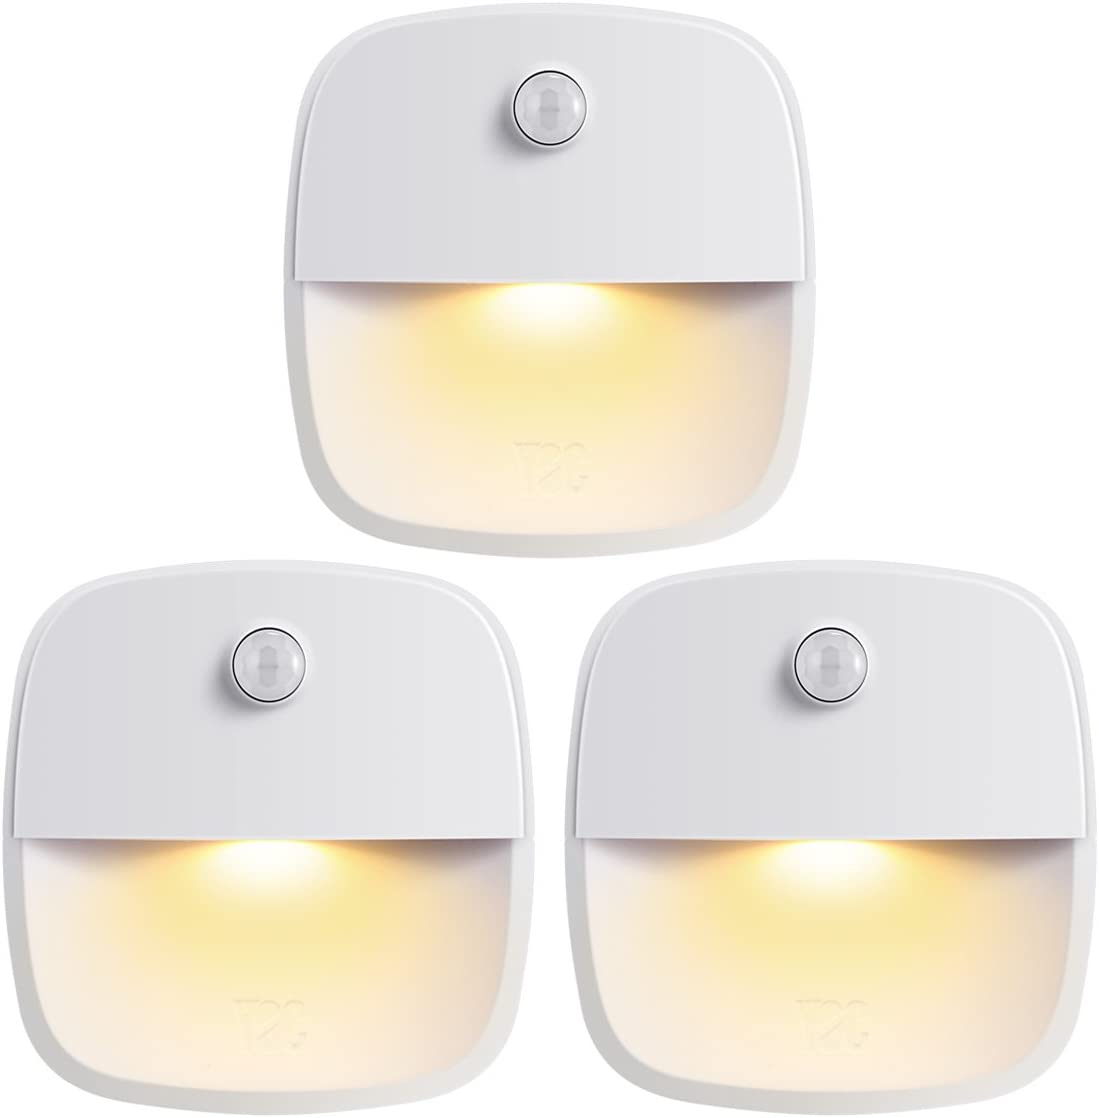 AMIR (Upgraded Version) Motion Sensor Light, Cordless Battery-Powered LED Night Light, Wall Light, Closet Lights, Safe Lights for Stairs, Hallway, Bathroom, Kitchen, Cabinet (Warm White - Pack of 3)